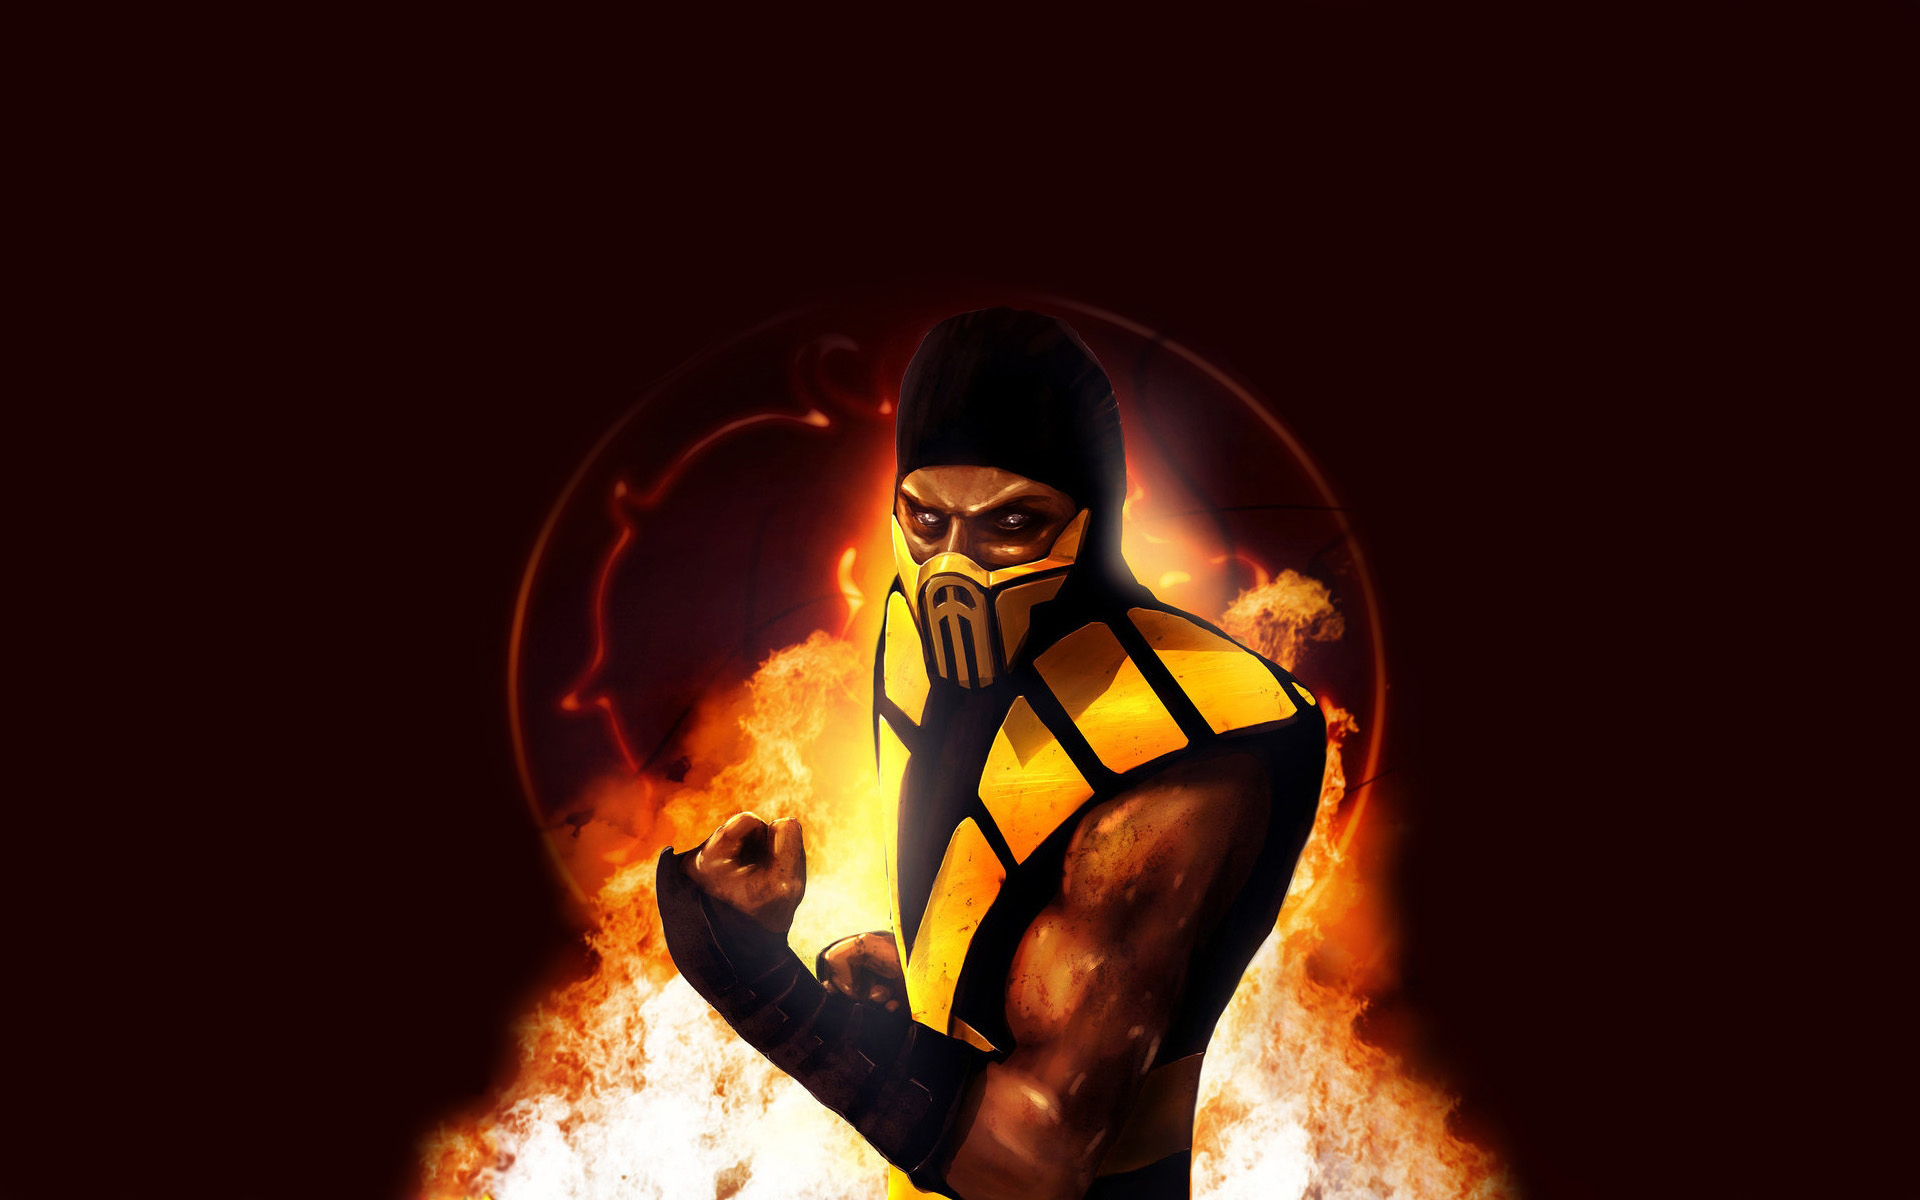 Mortal Kombat wallpaper Scorpion on fire